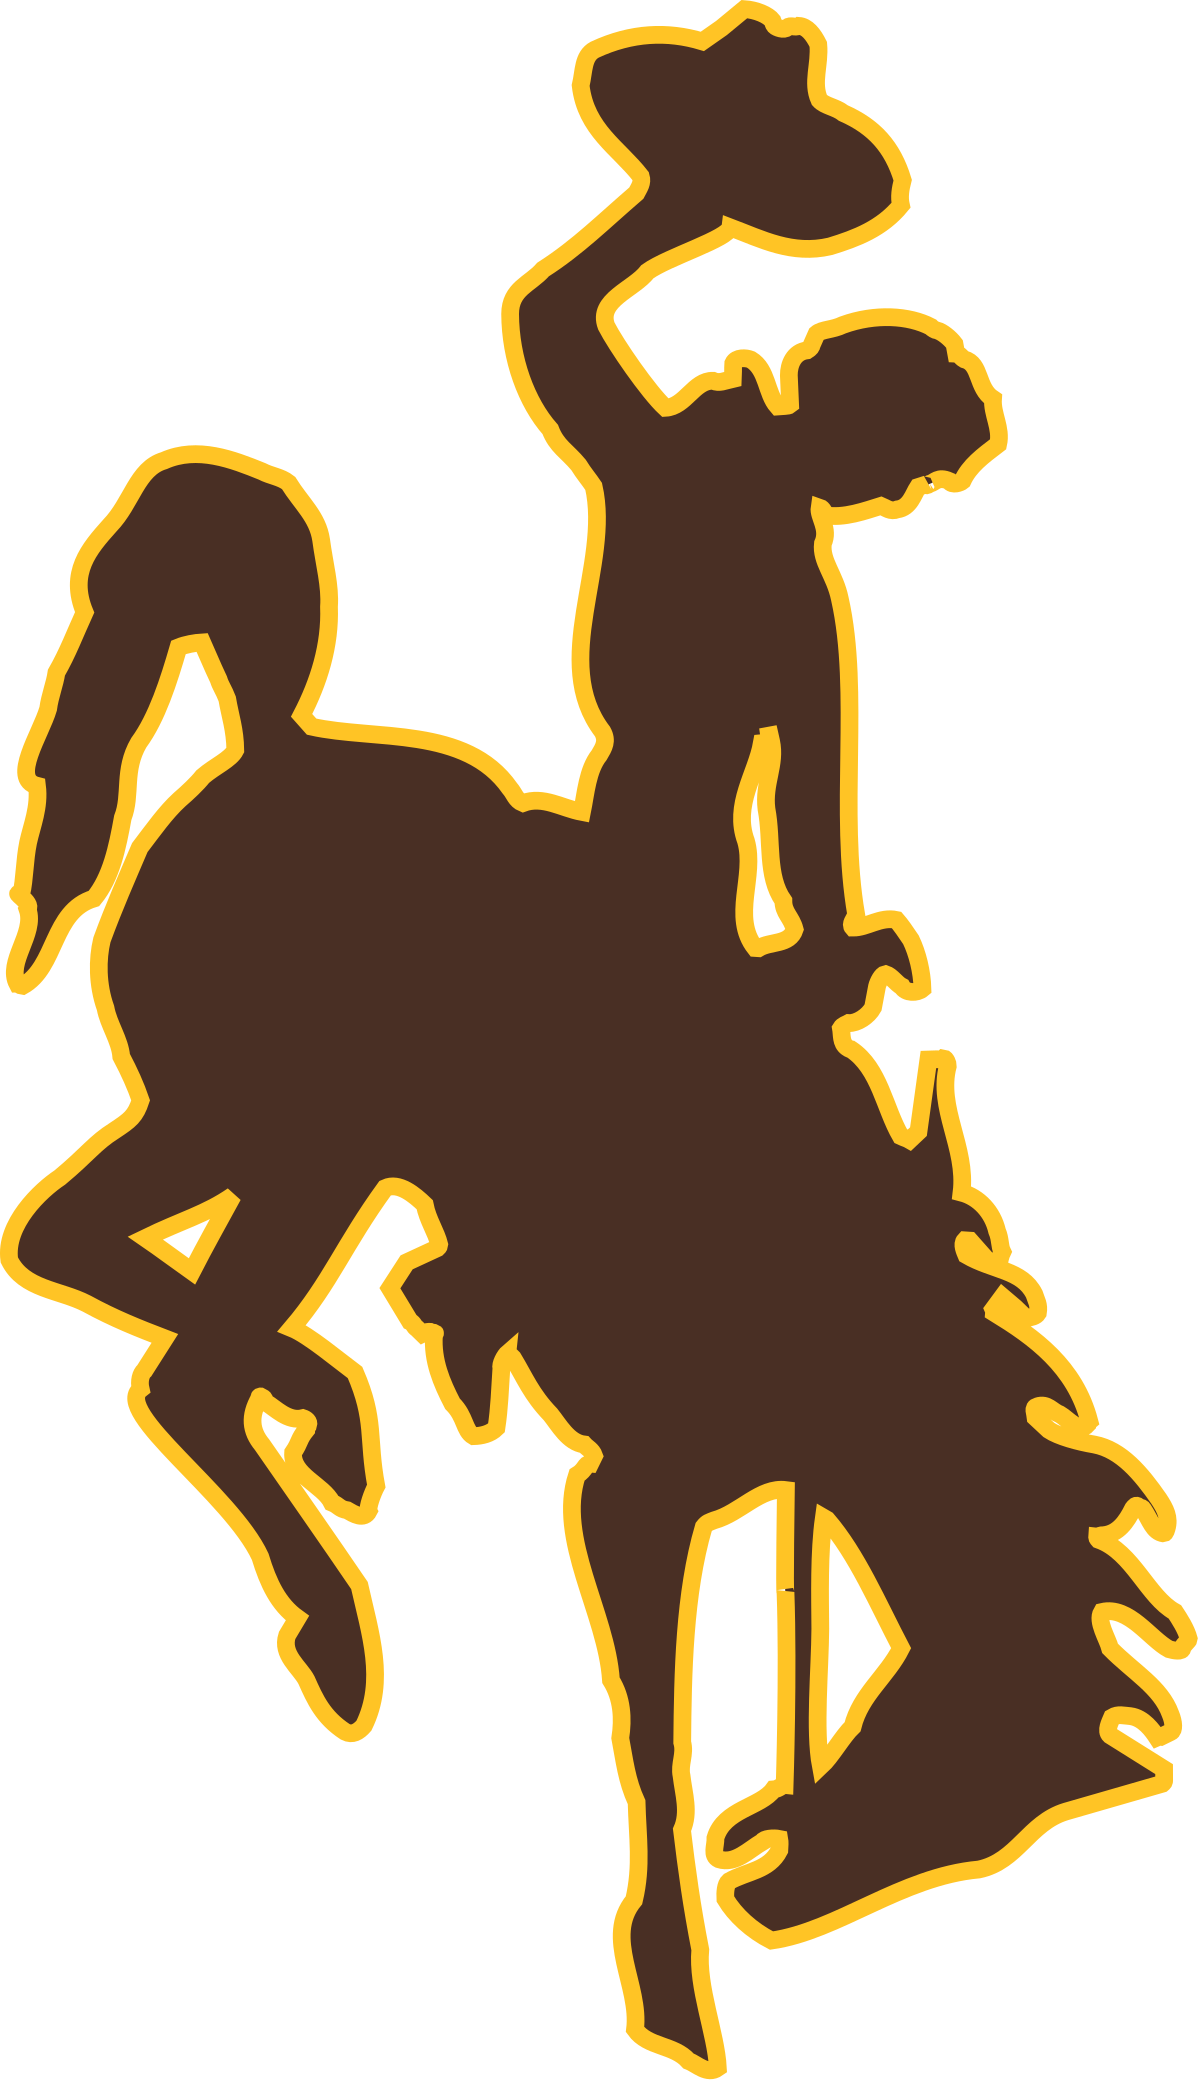 Horse football mascot clipart vector free 2017 Wyoming Cowboys football team - Wikipedia vector free